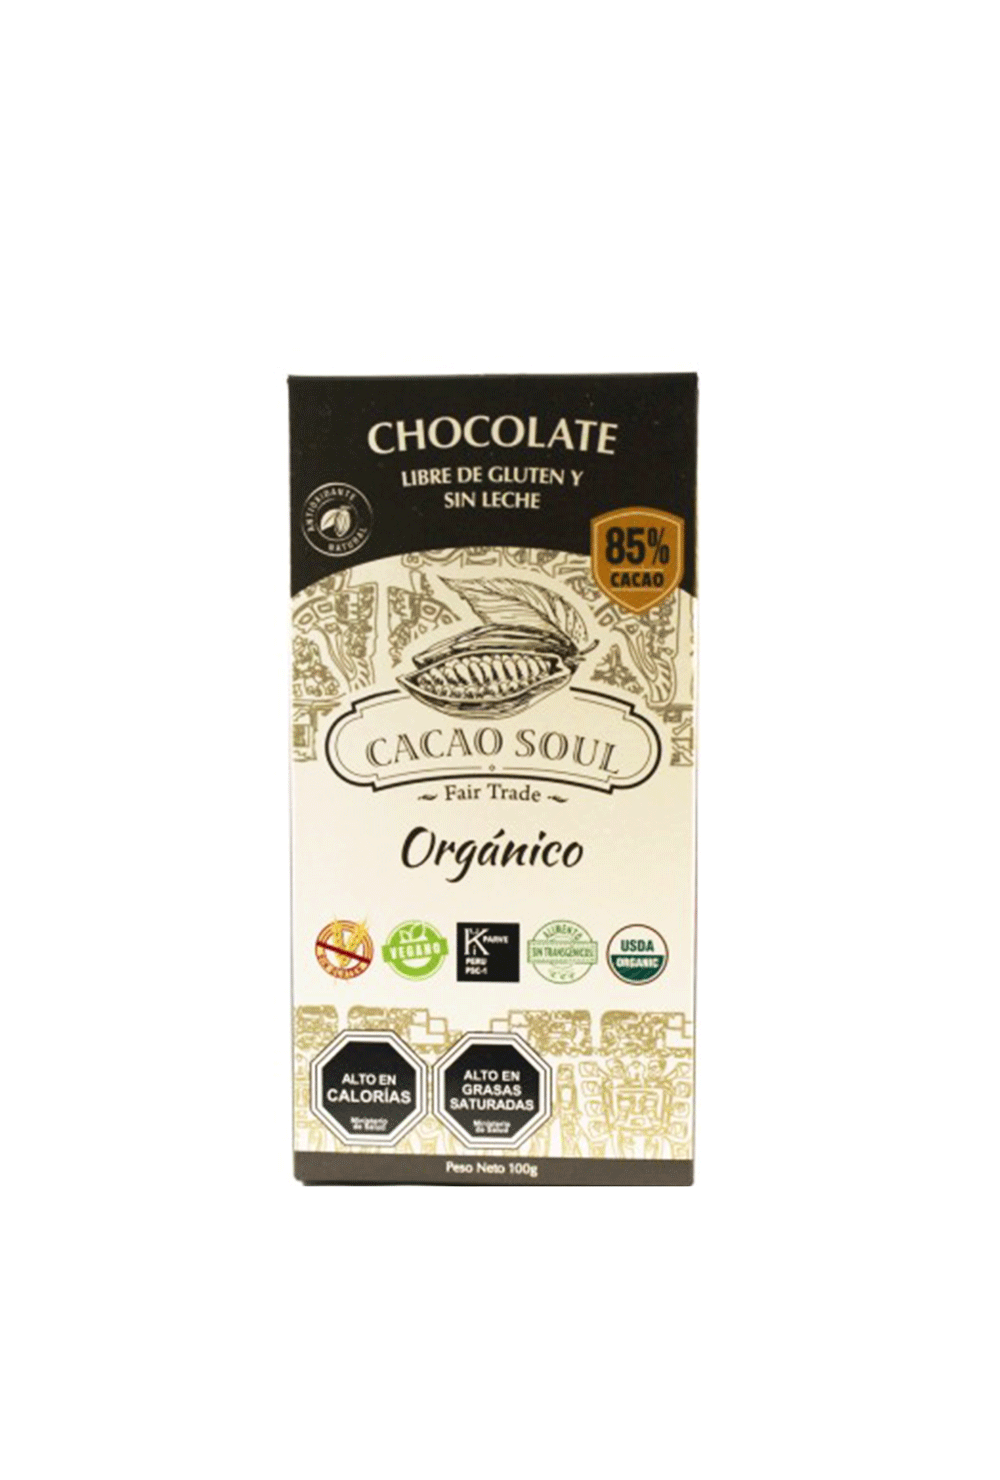 Chocolate 85% cacao Sin gluten orgánico 100 grs CACAO SOUL